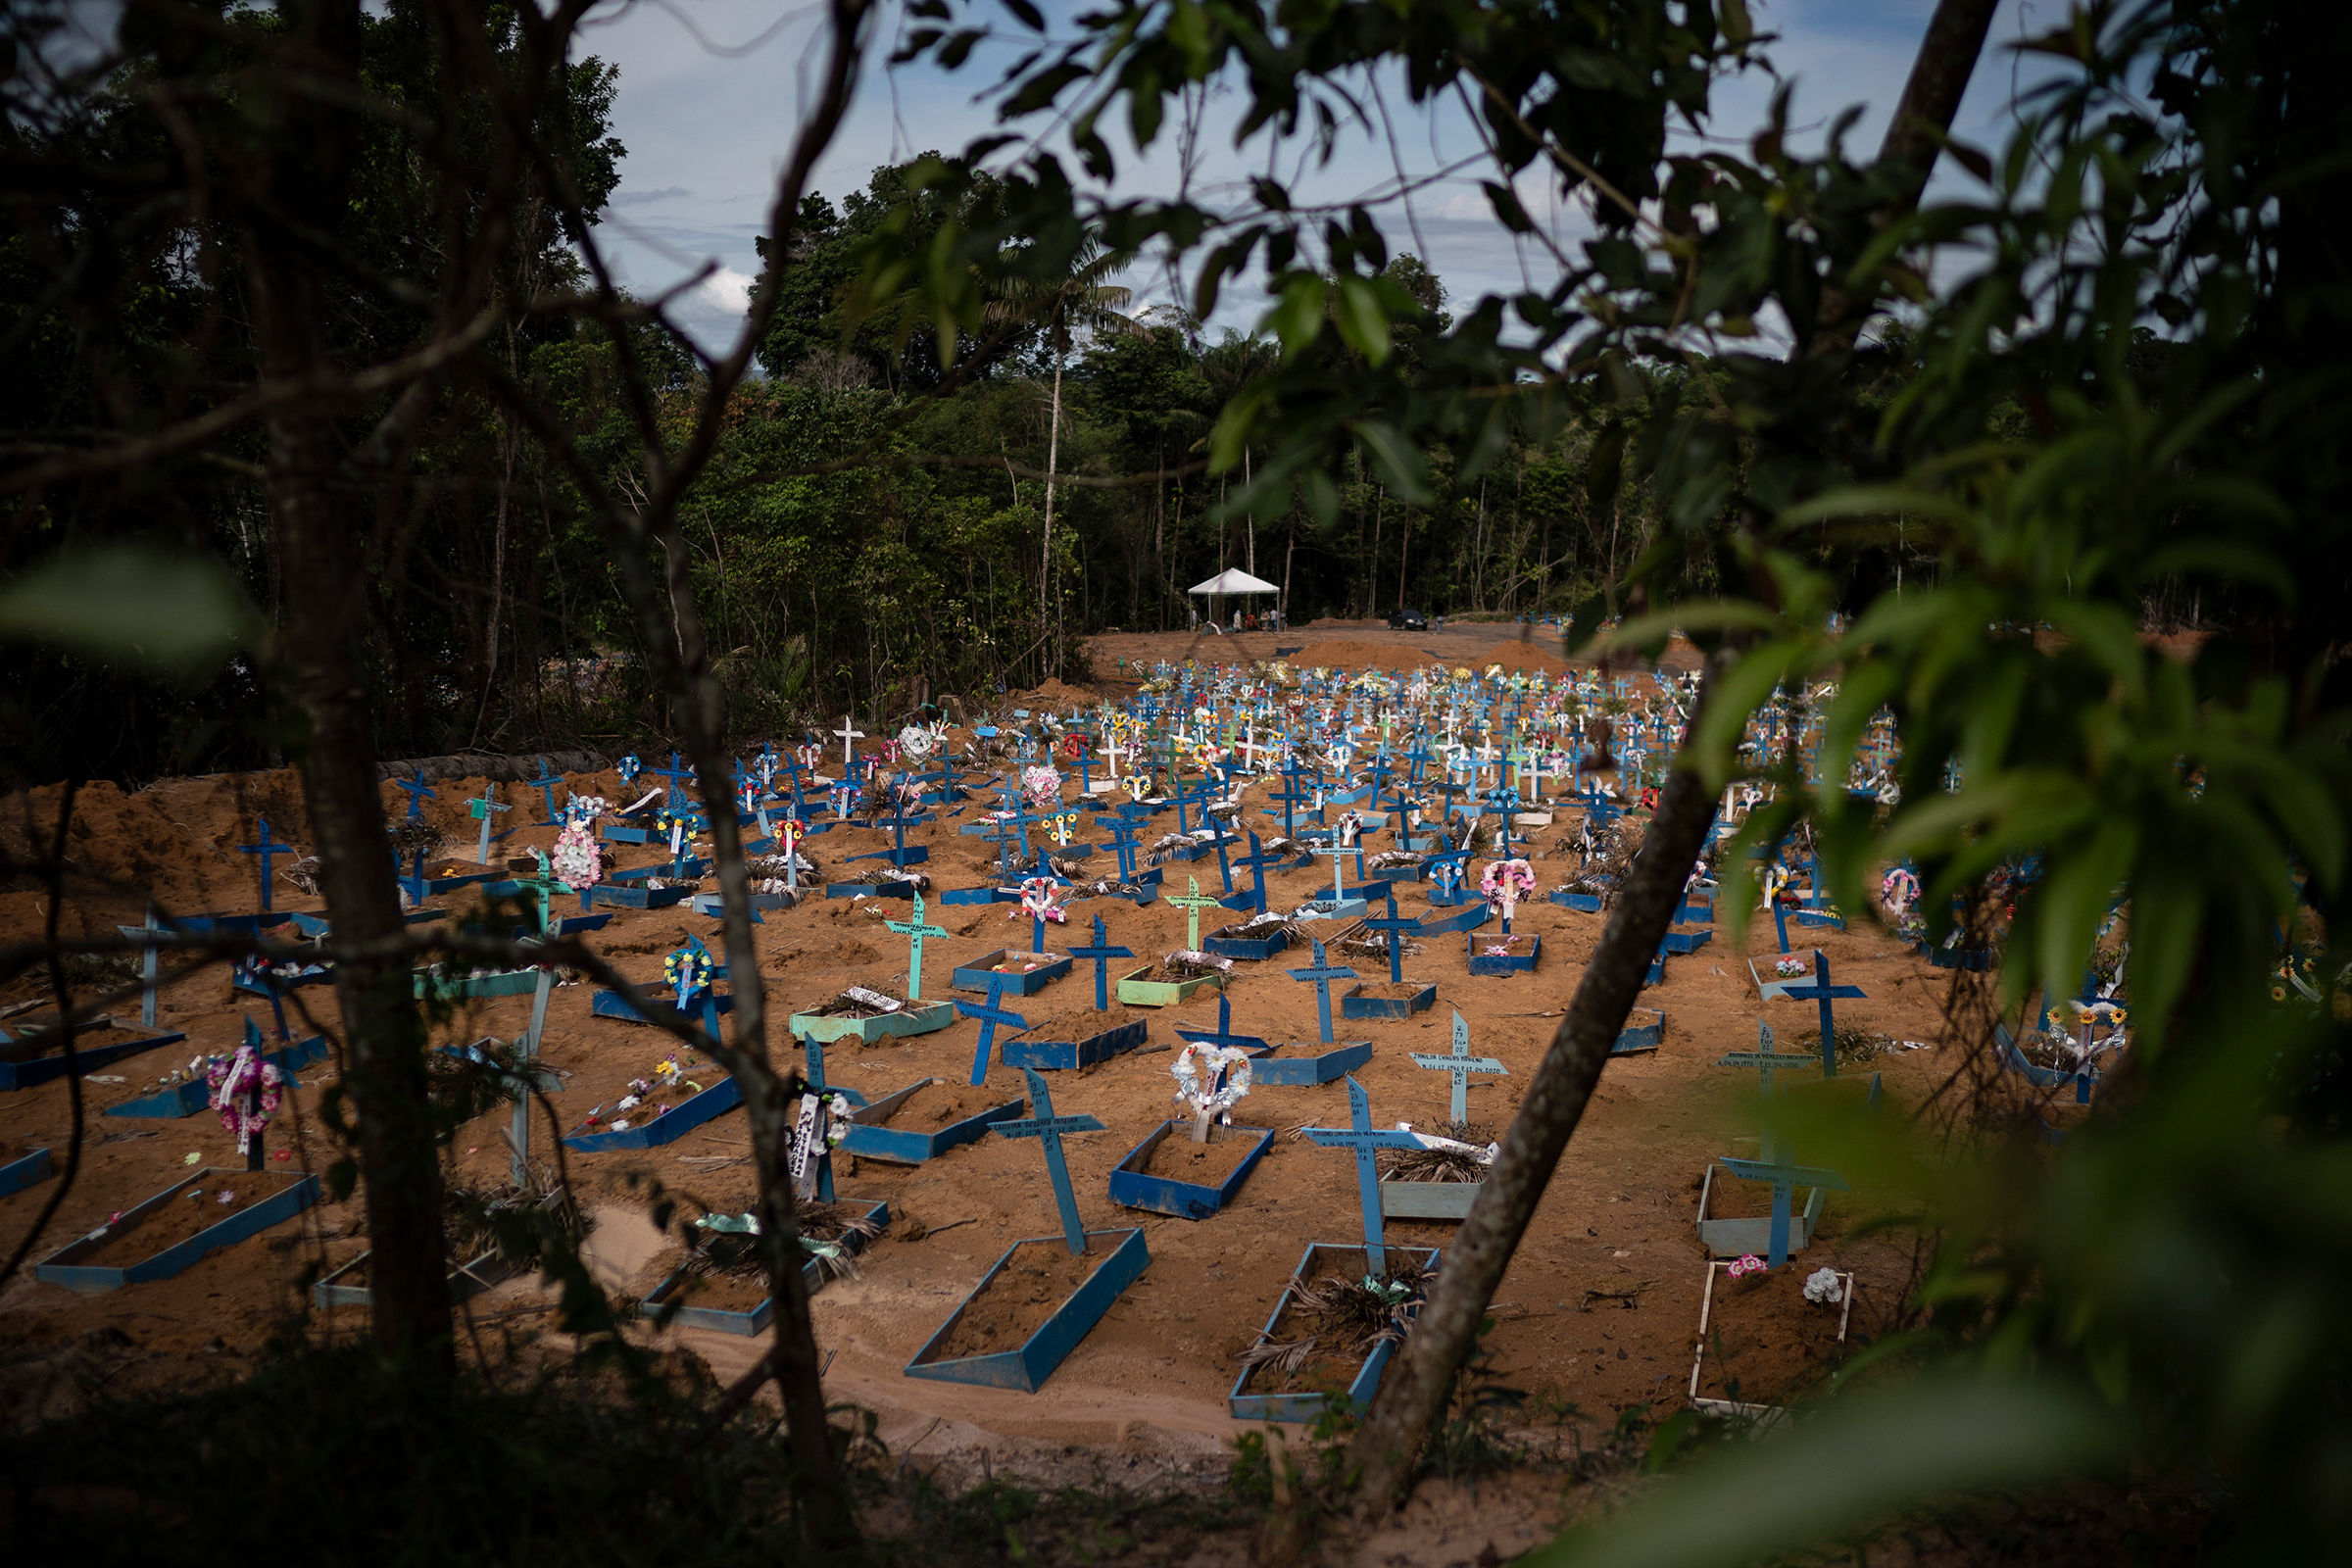 Graves of people who died in the past 30 days fill a new section of the Nossa Senhora Aparecida cemetery in Manaus, Brazil, on May 11, 2020. The new section was opened last month to cope with a sudden surge in deaths.